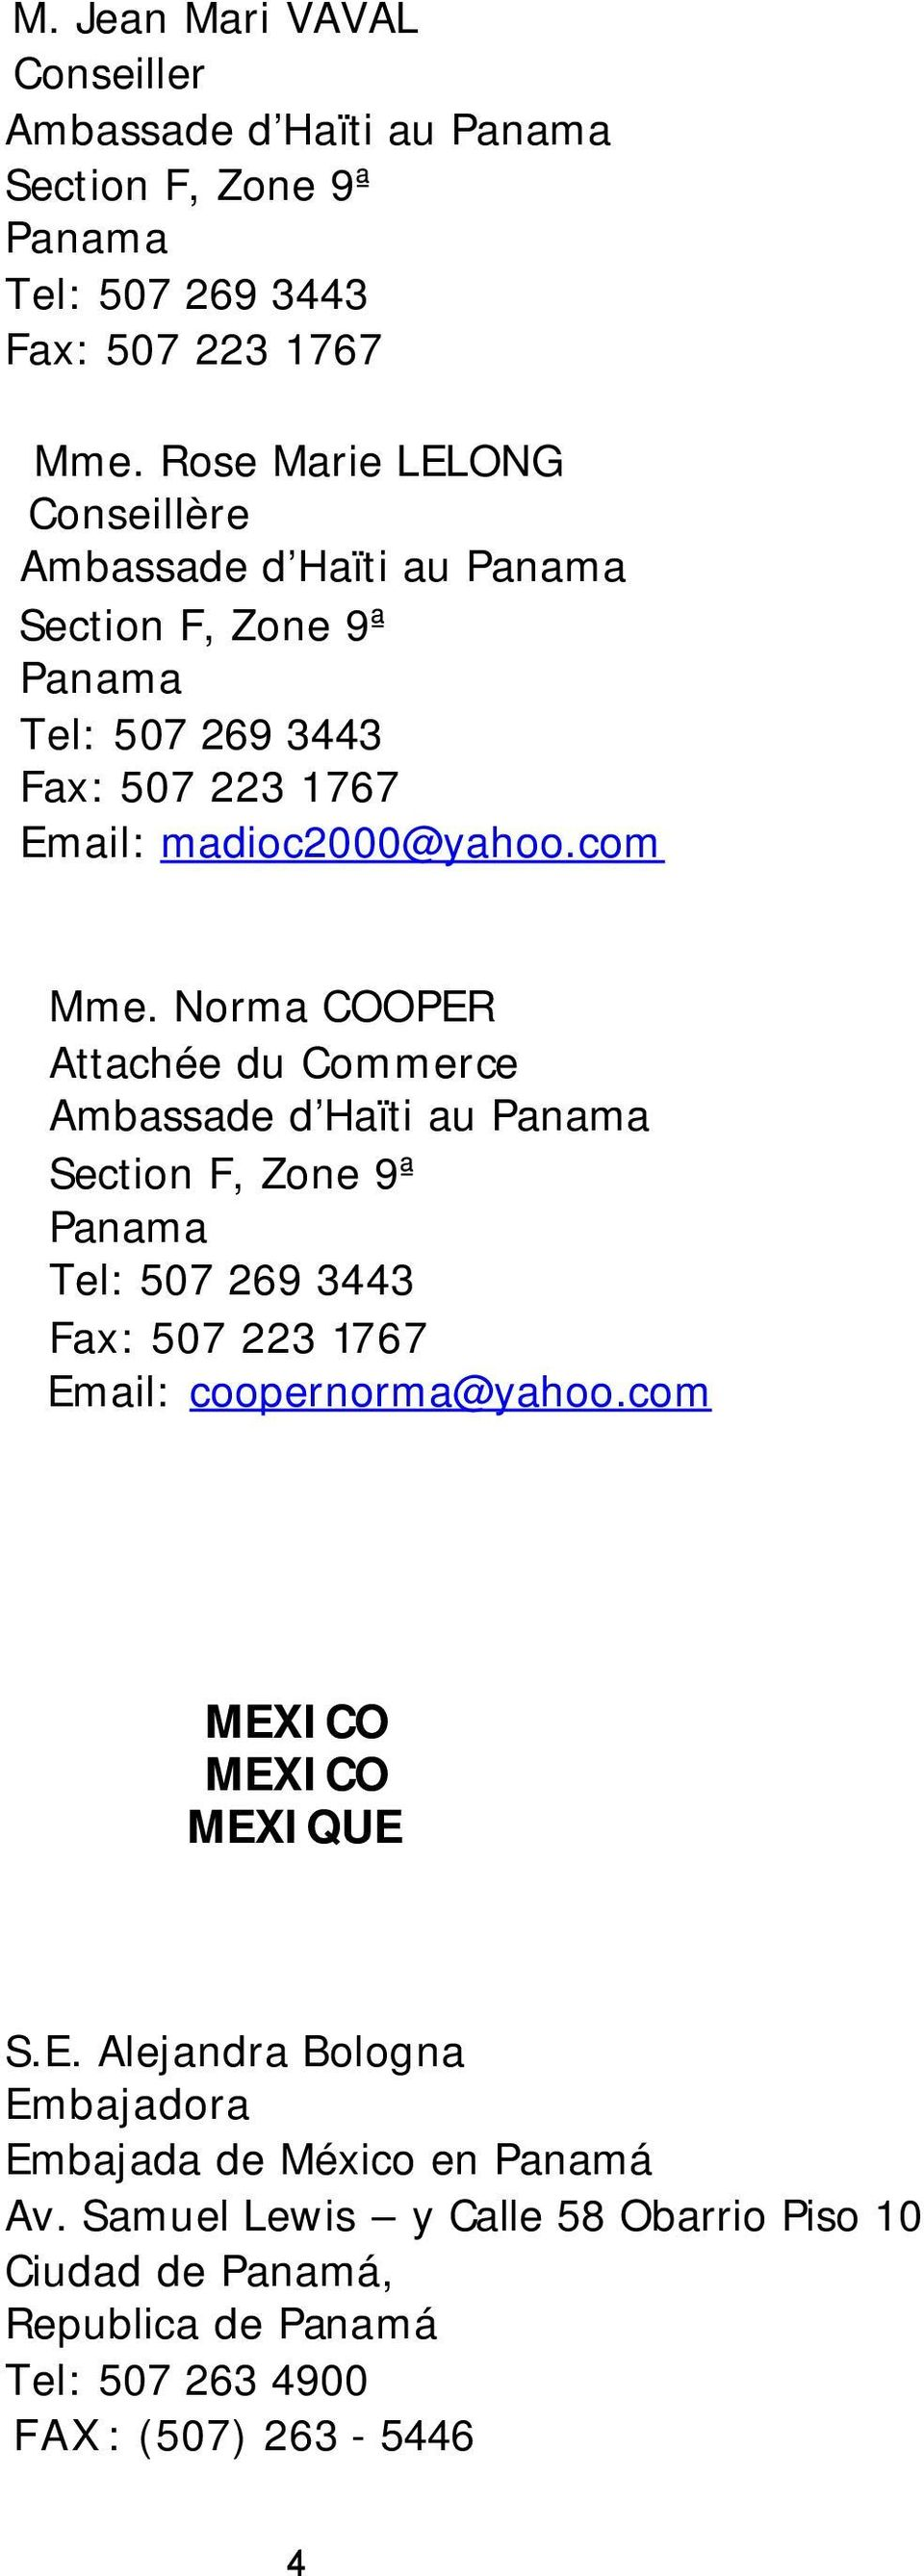 Norma COOPER Attachée du Commerce Ambassade d Haïti au Panama Section F, Zone 9ª Panama Tel: 507 269 3443 Fax: 507 223 1767 Email: coopernorma@yahoo.